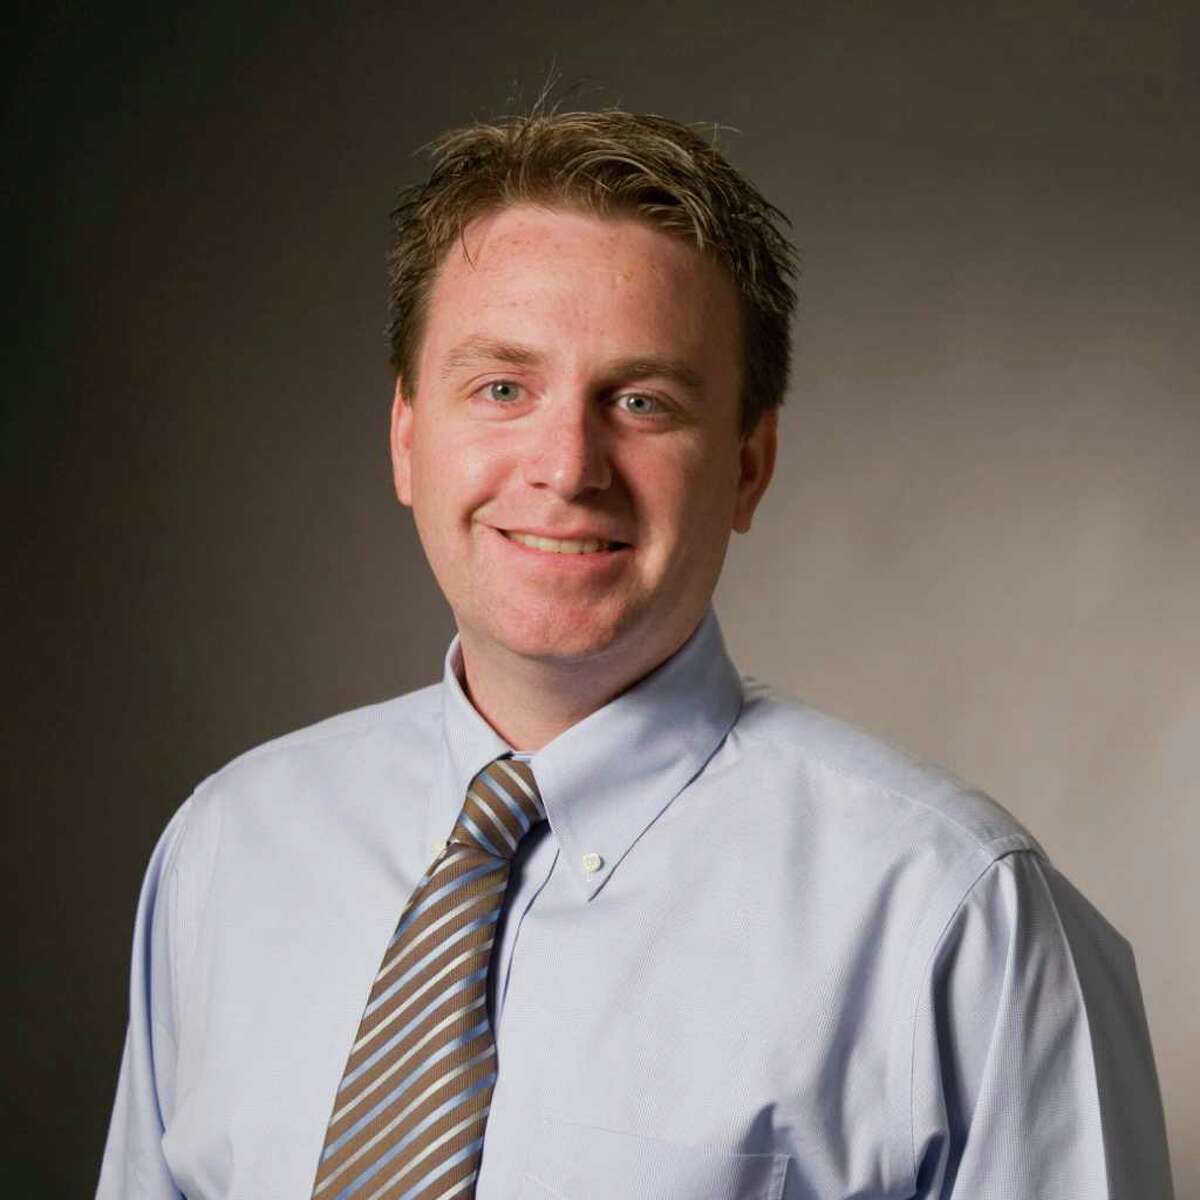 Alex Wren is branch manager of Scottrade's 220th location, which opened at at One Stamford Plaza in December 2004 and moved Monday to Landmark Square in Stamford.